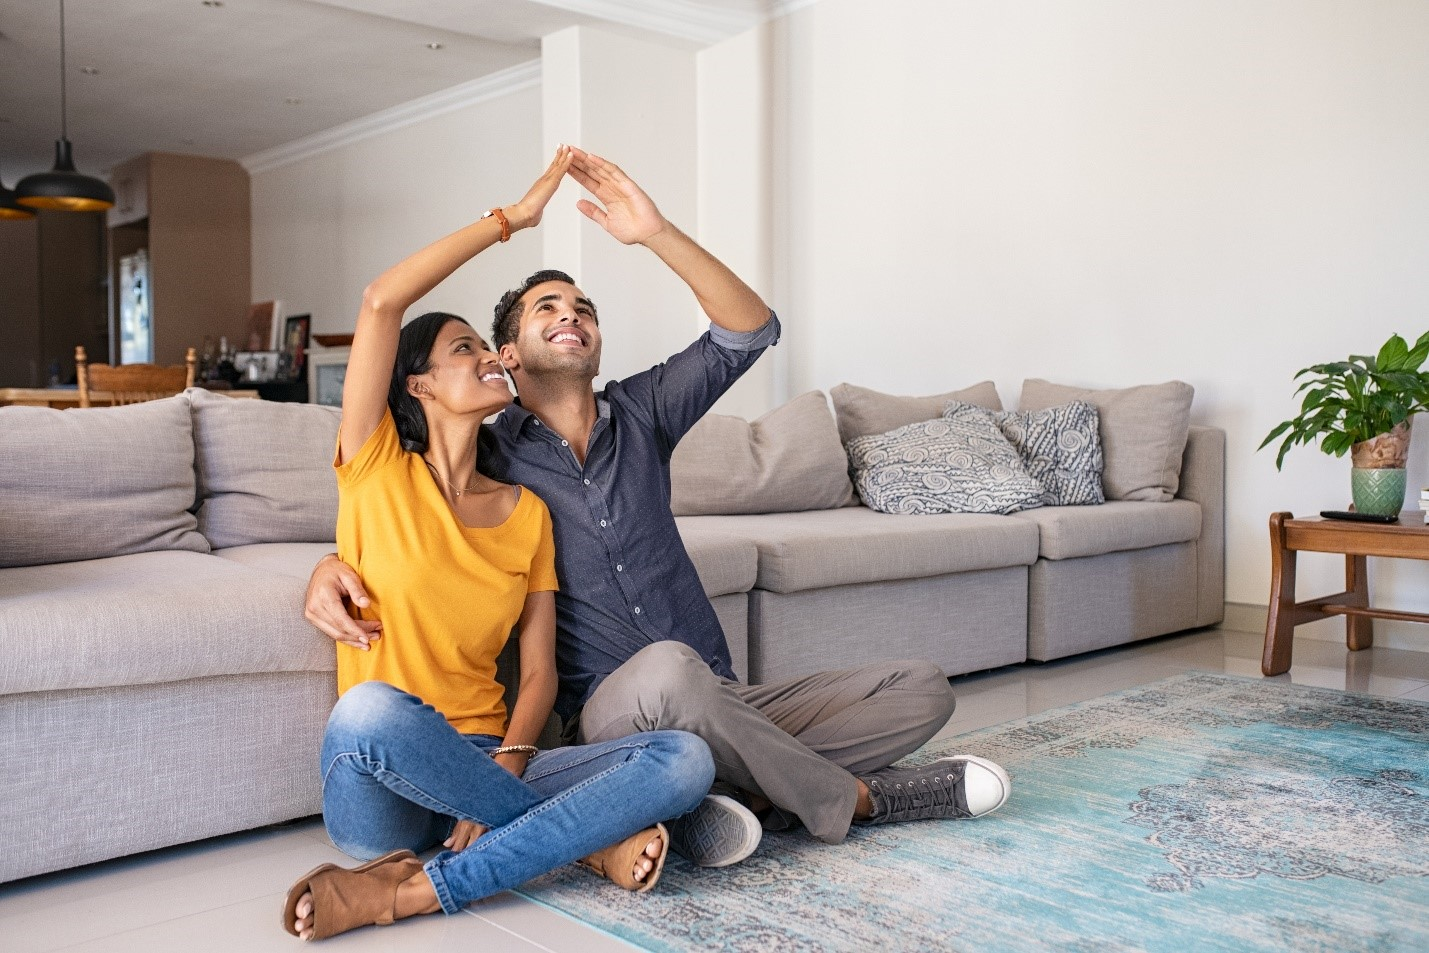 Buy a Home in Your Wife's Name